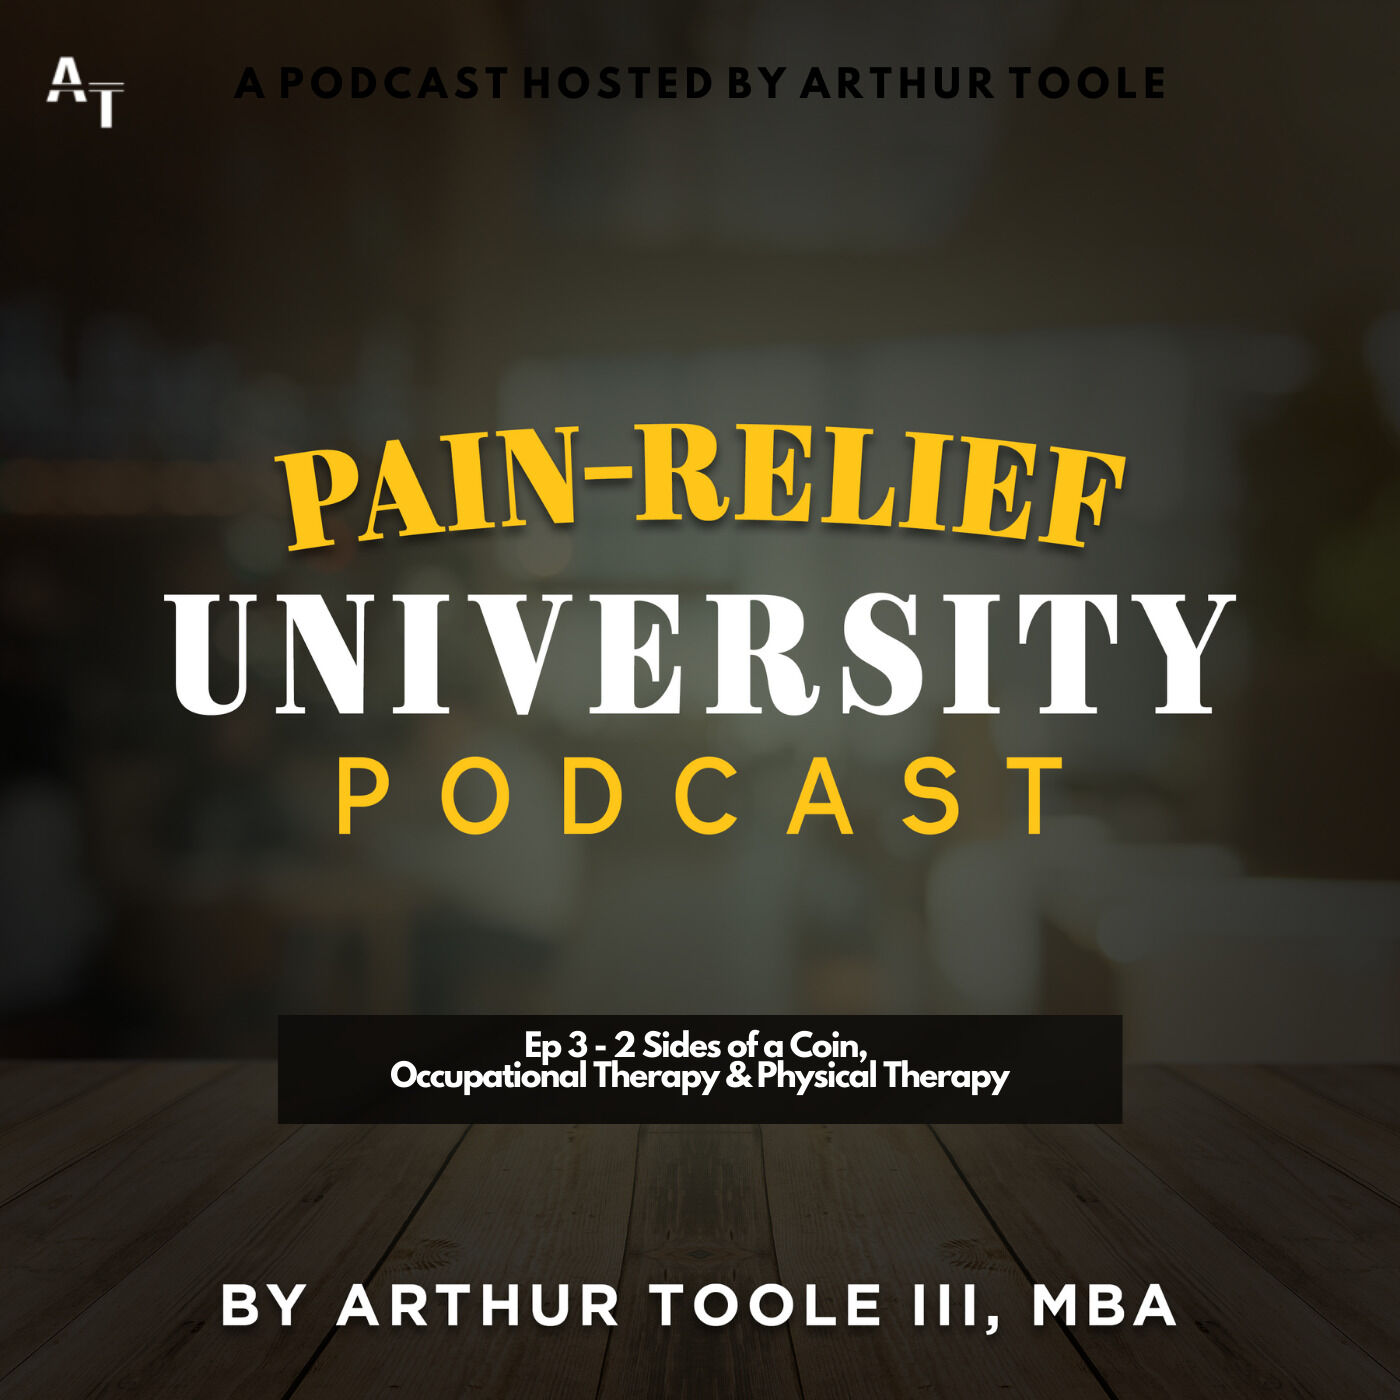 Ep 3 - 2 Sides of a Coin, Occupational Therapy & Physical Therapy